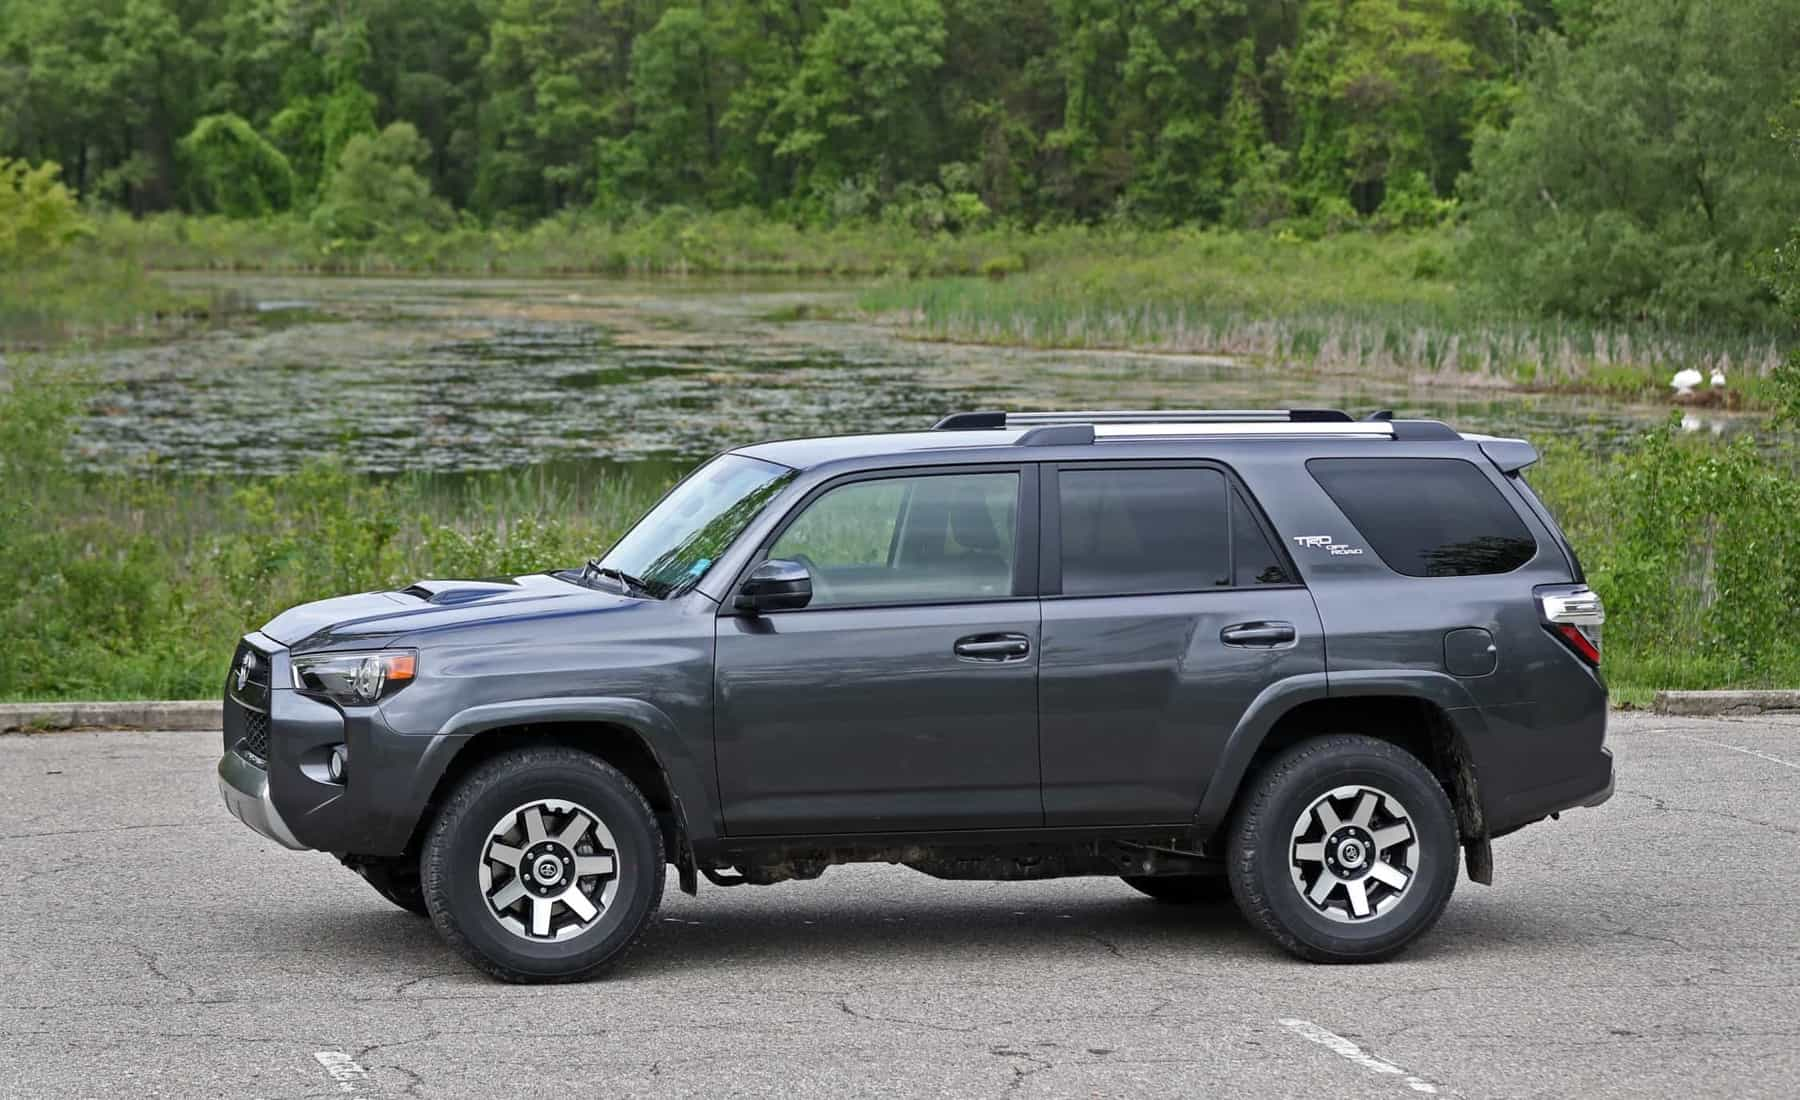 2017 Toyota 4Runner TRD Off Road 4WD Exterior Side View (View 36 of 40)